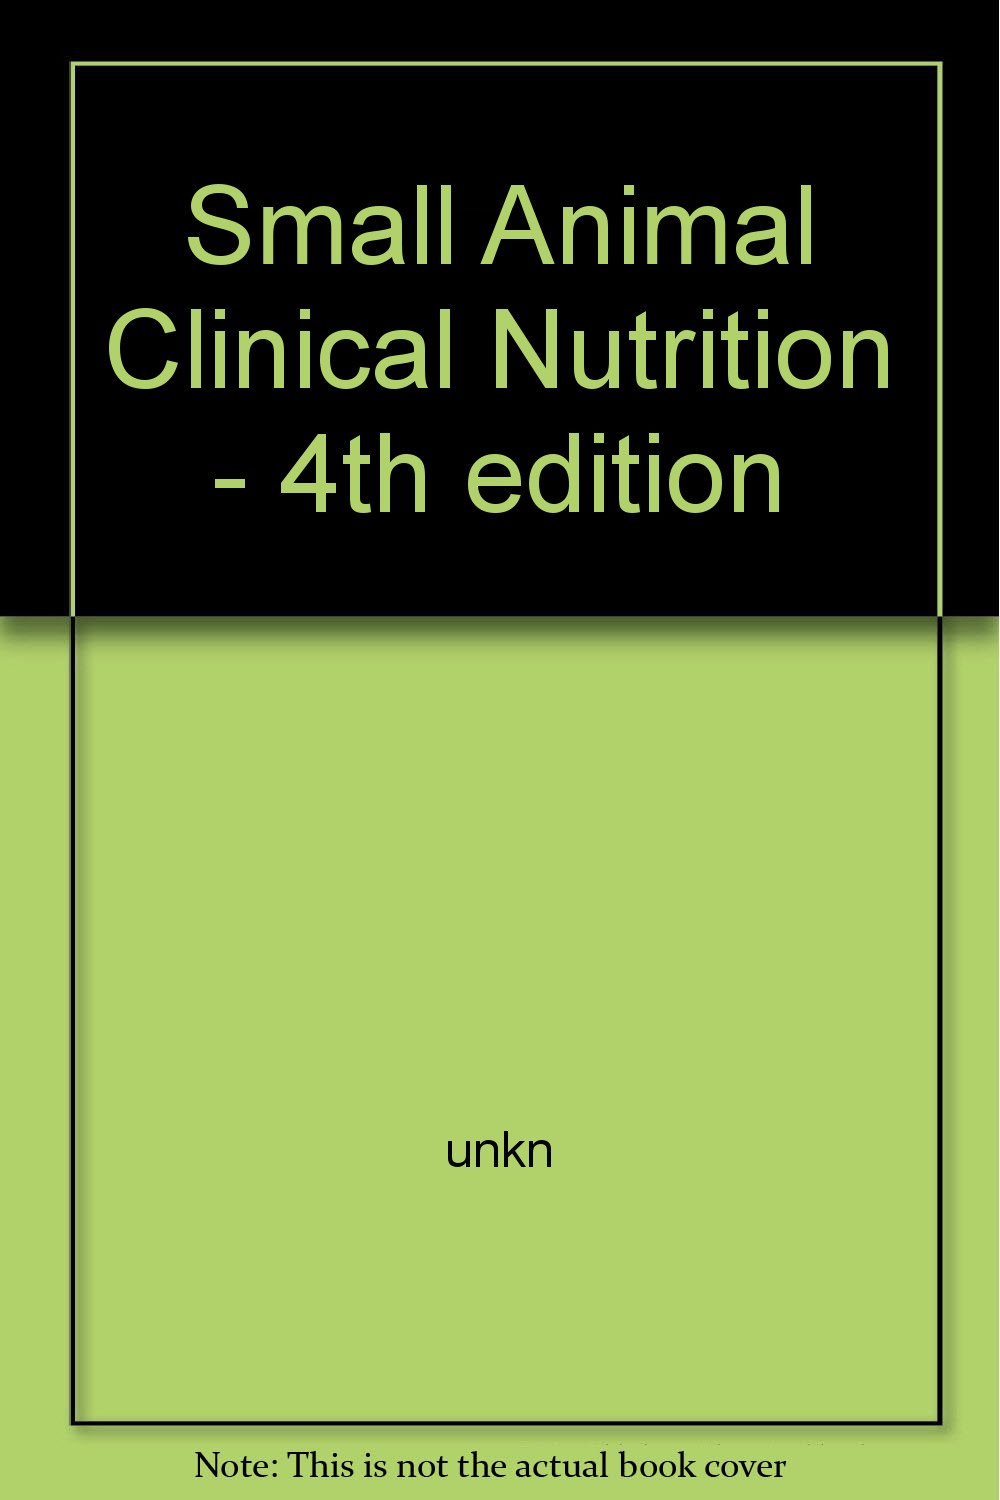 Small Animal Clinical Nutrition 4th Edition